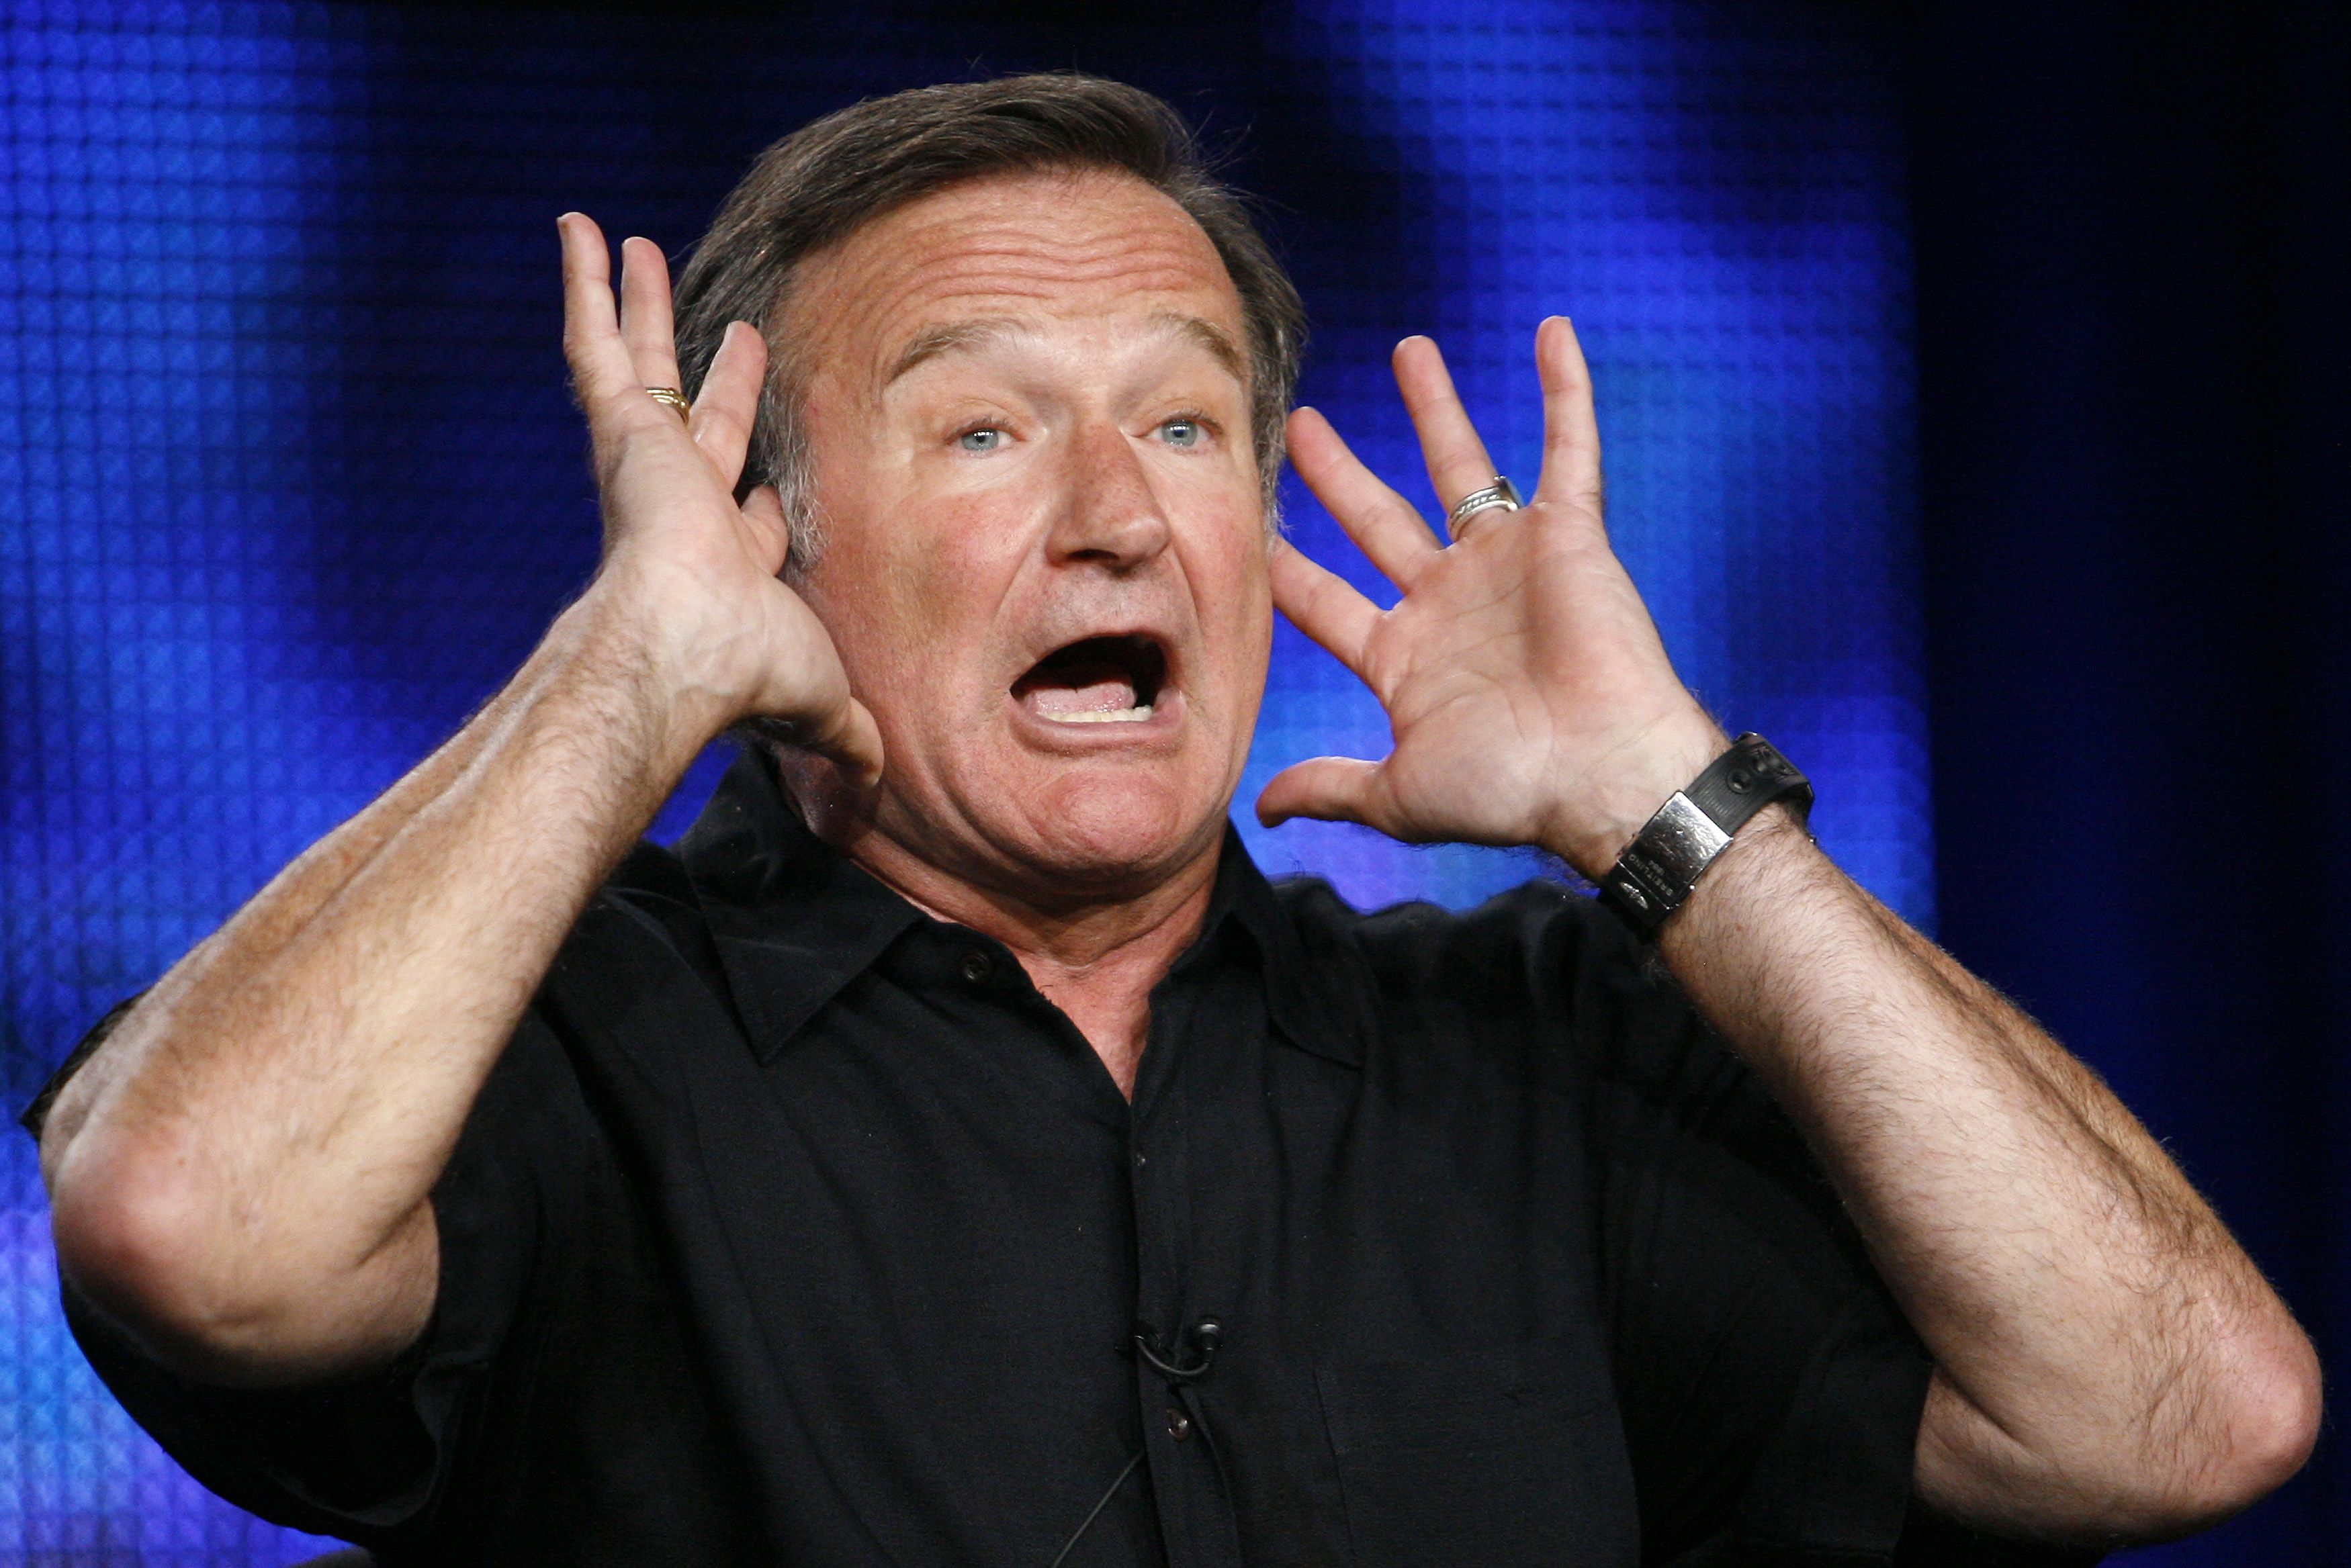 Pin by Smiles For Sure on Star Robin Williams  Pinterest  Robin